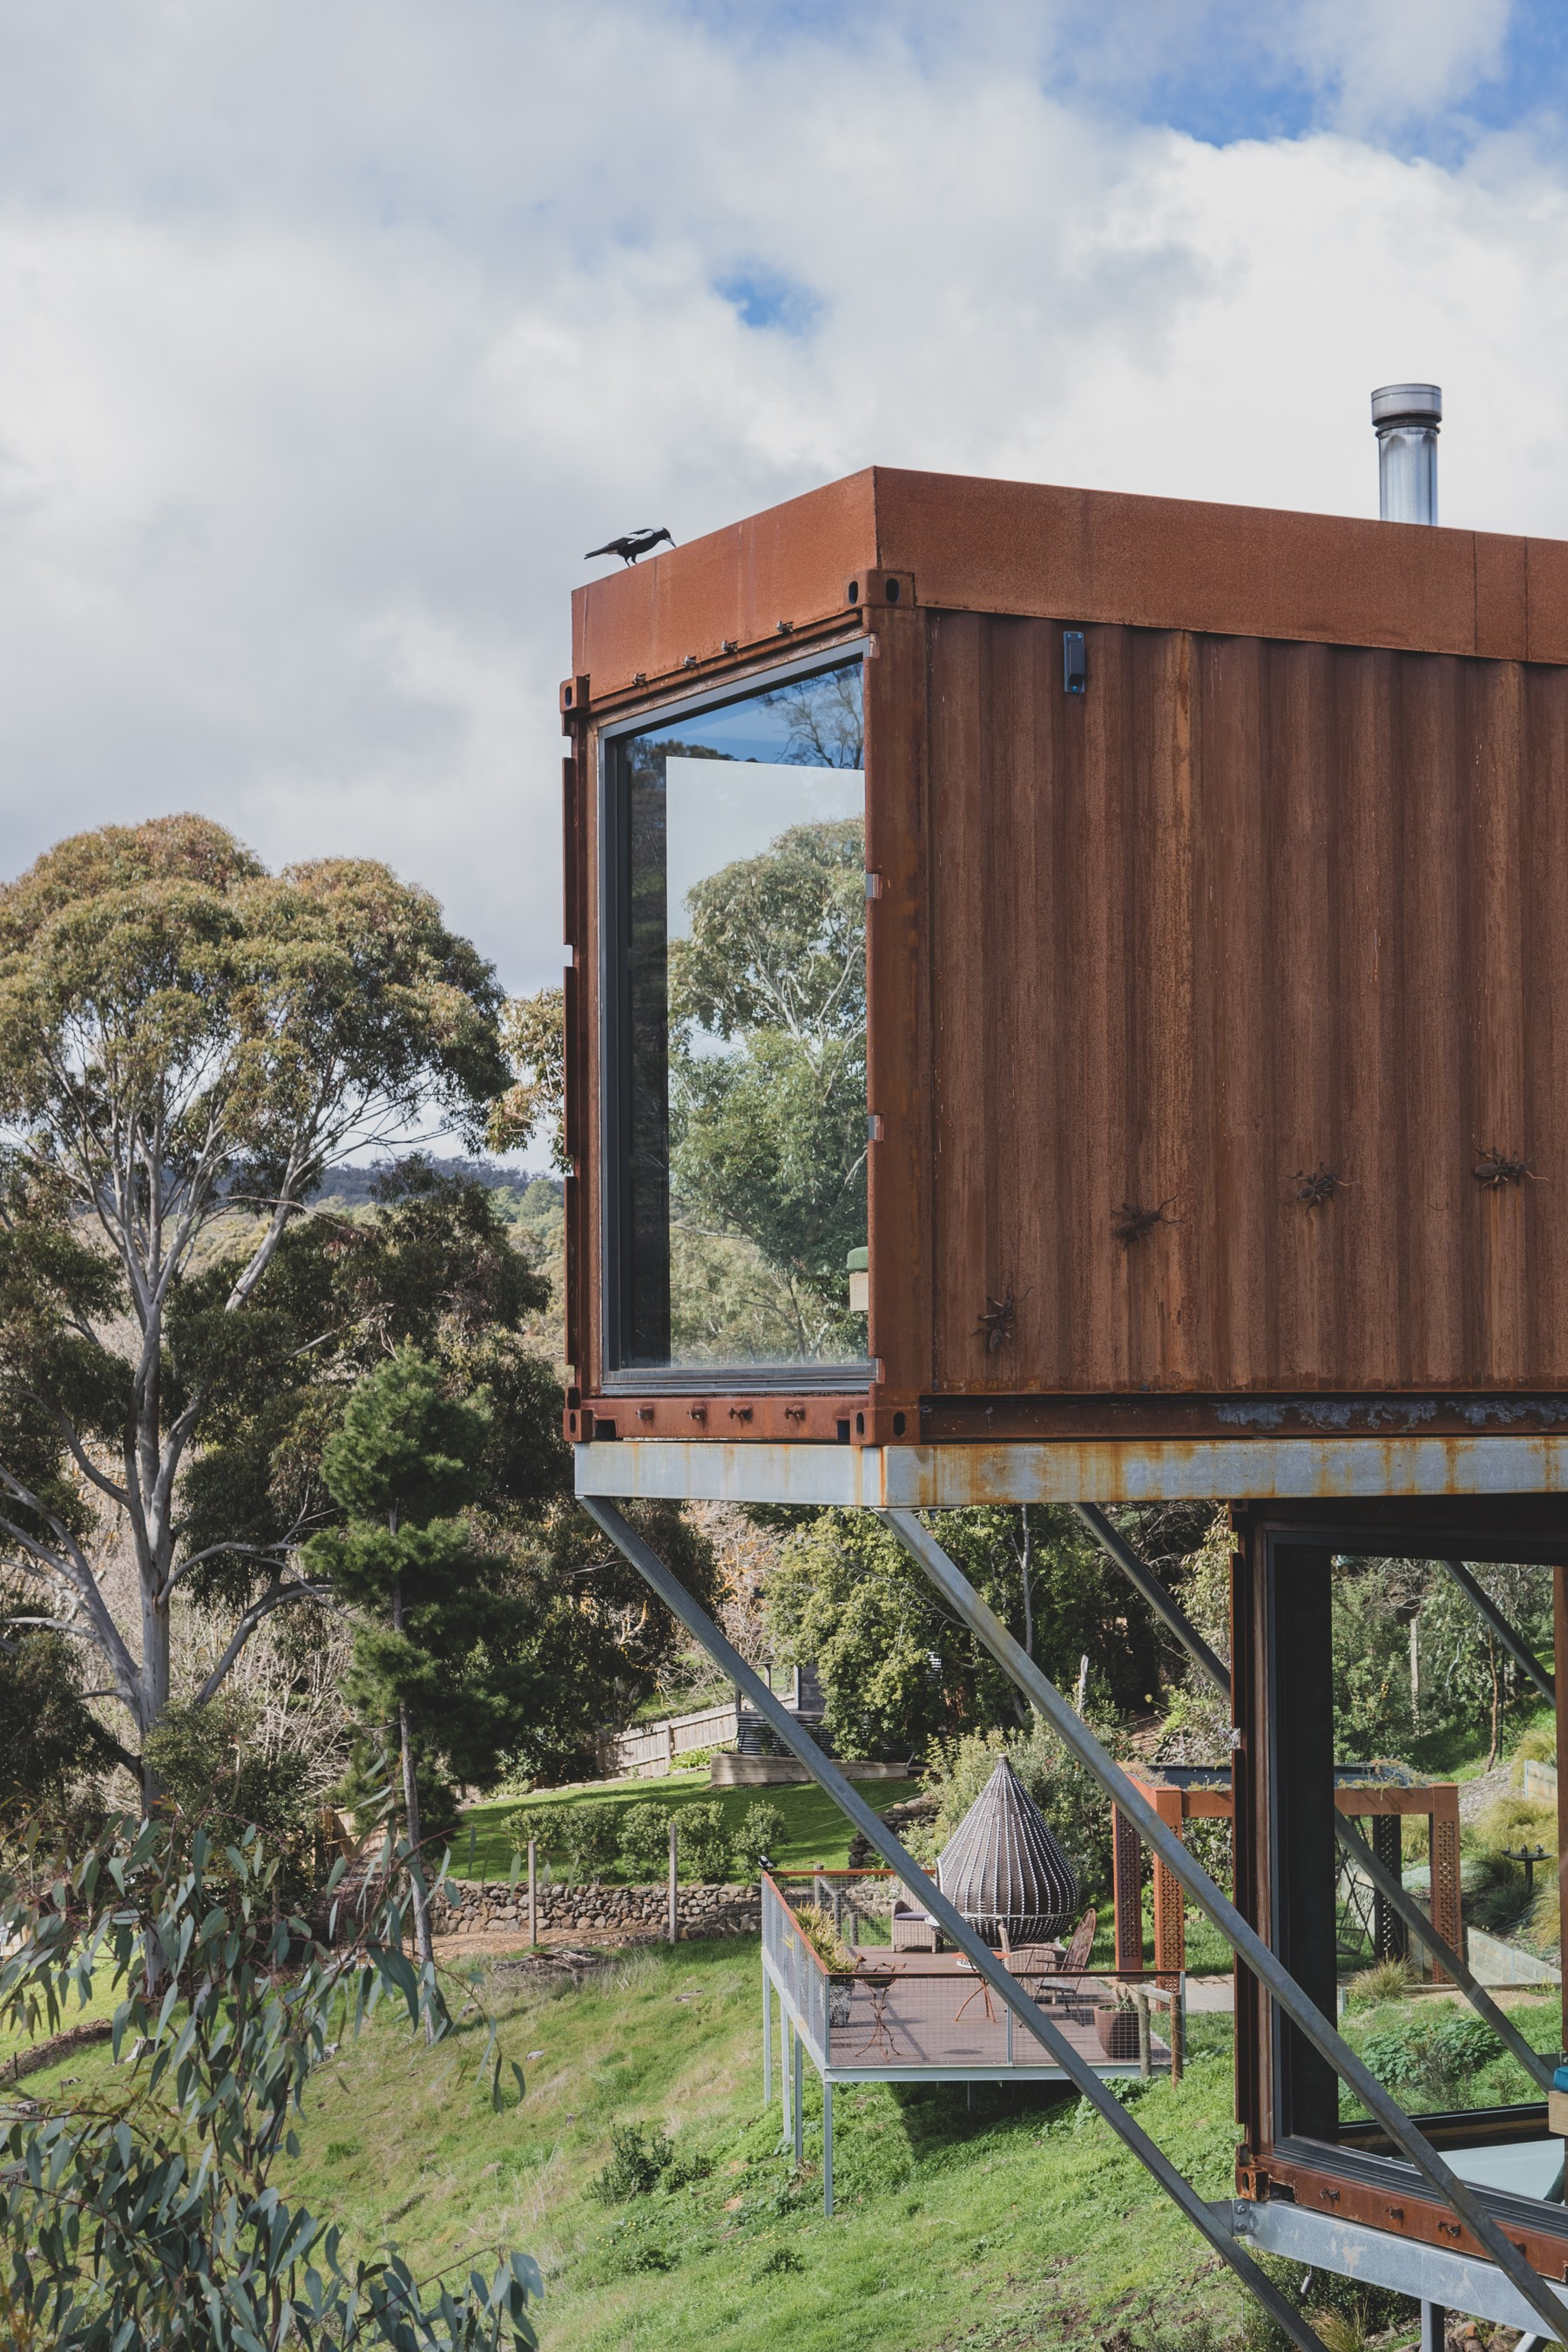 Shipping container accommodation. Clifftop at Hepburn.